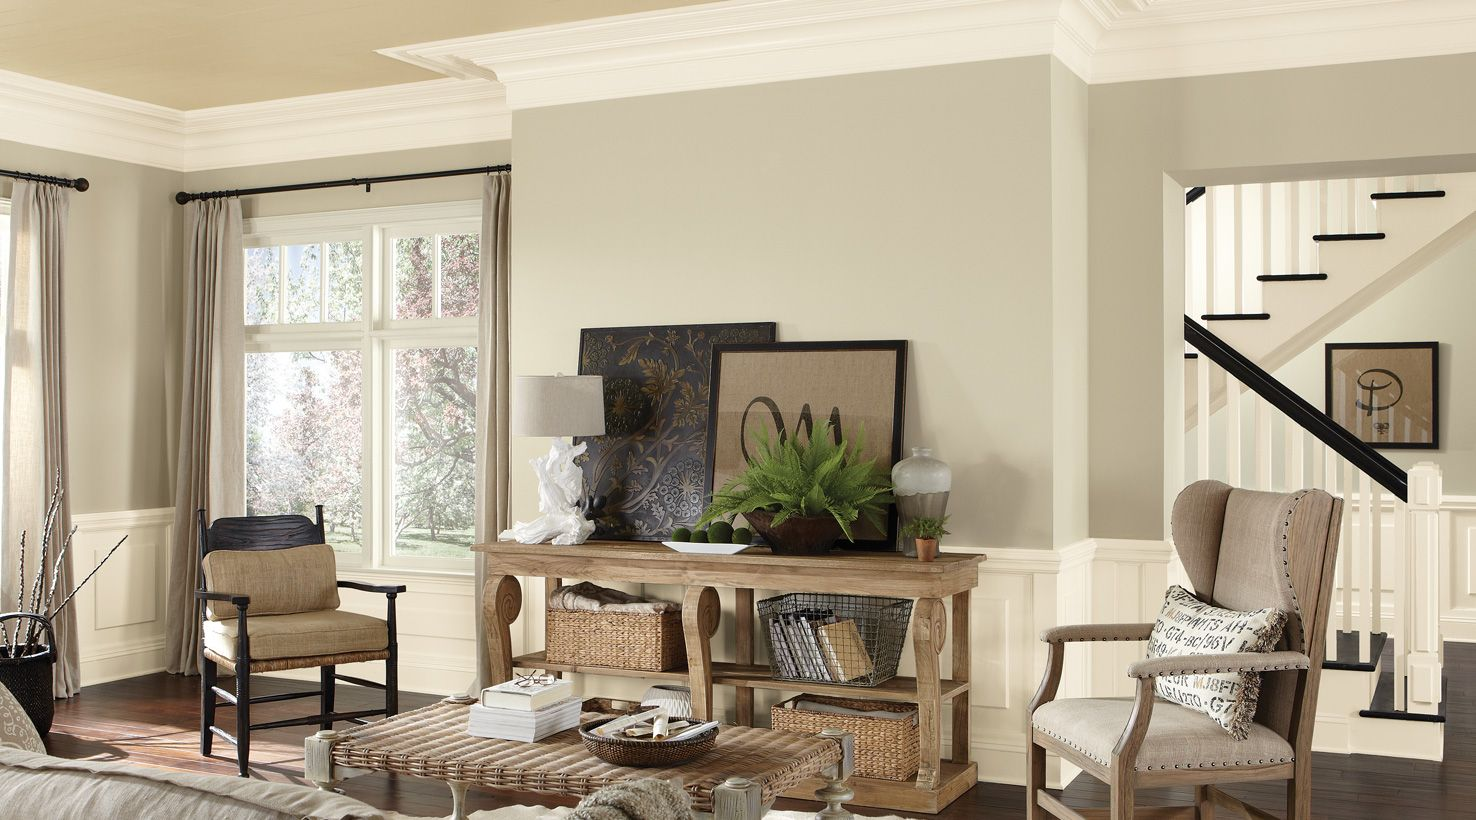 painting your living room best behr colors for ideas interior paint want to learn how or get expert advice on choose if you are looking design re